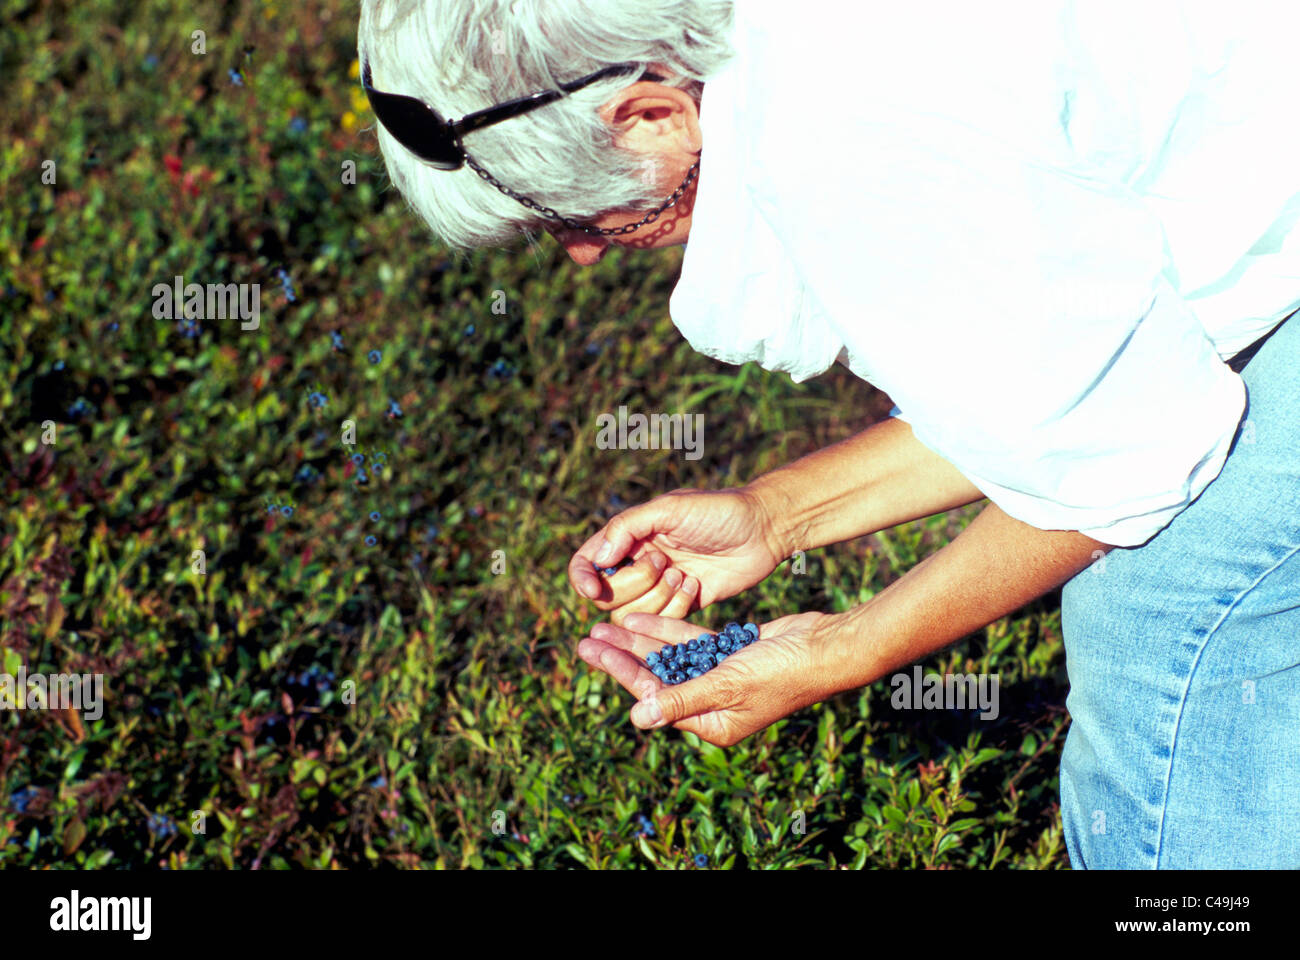 Middle-aged Woman picking Blueberries from Small Wild Blueberry Bush in Field near Diligent River, Nova Scotia, - Stock Image